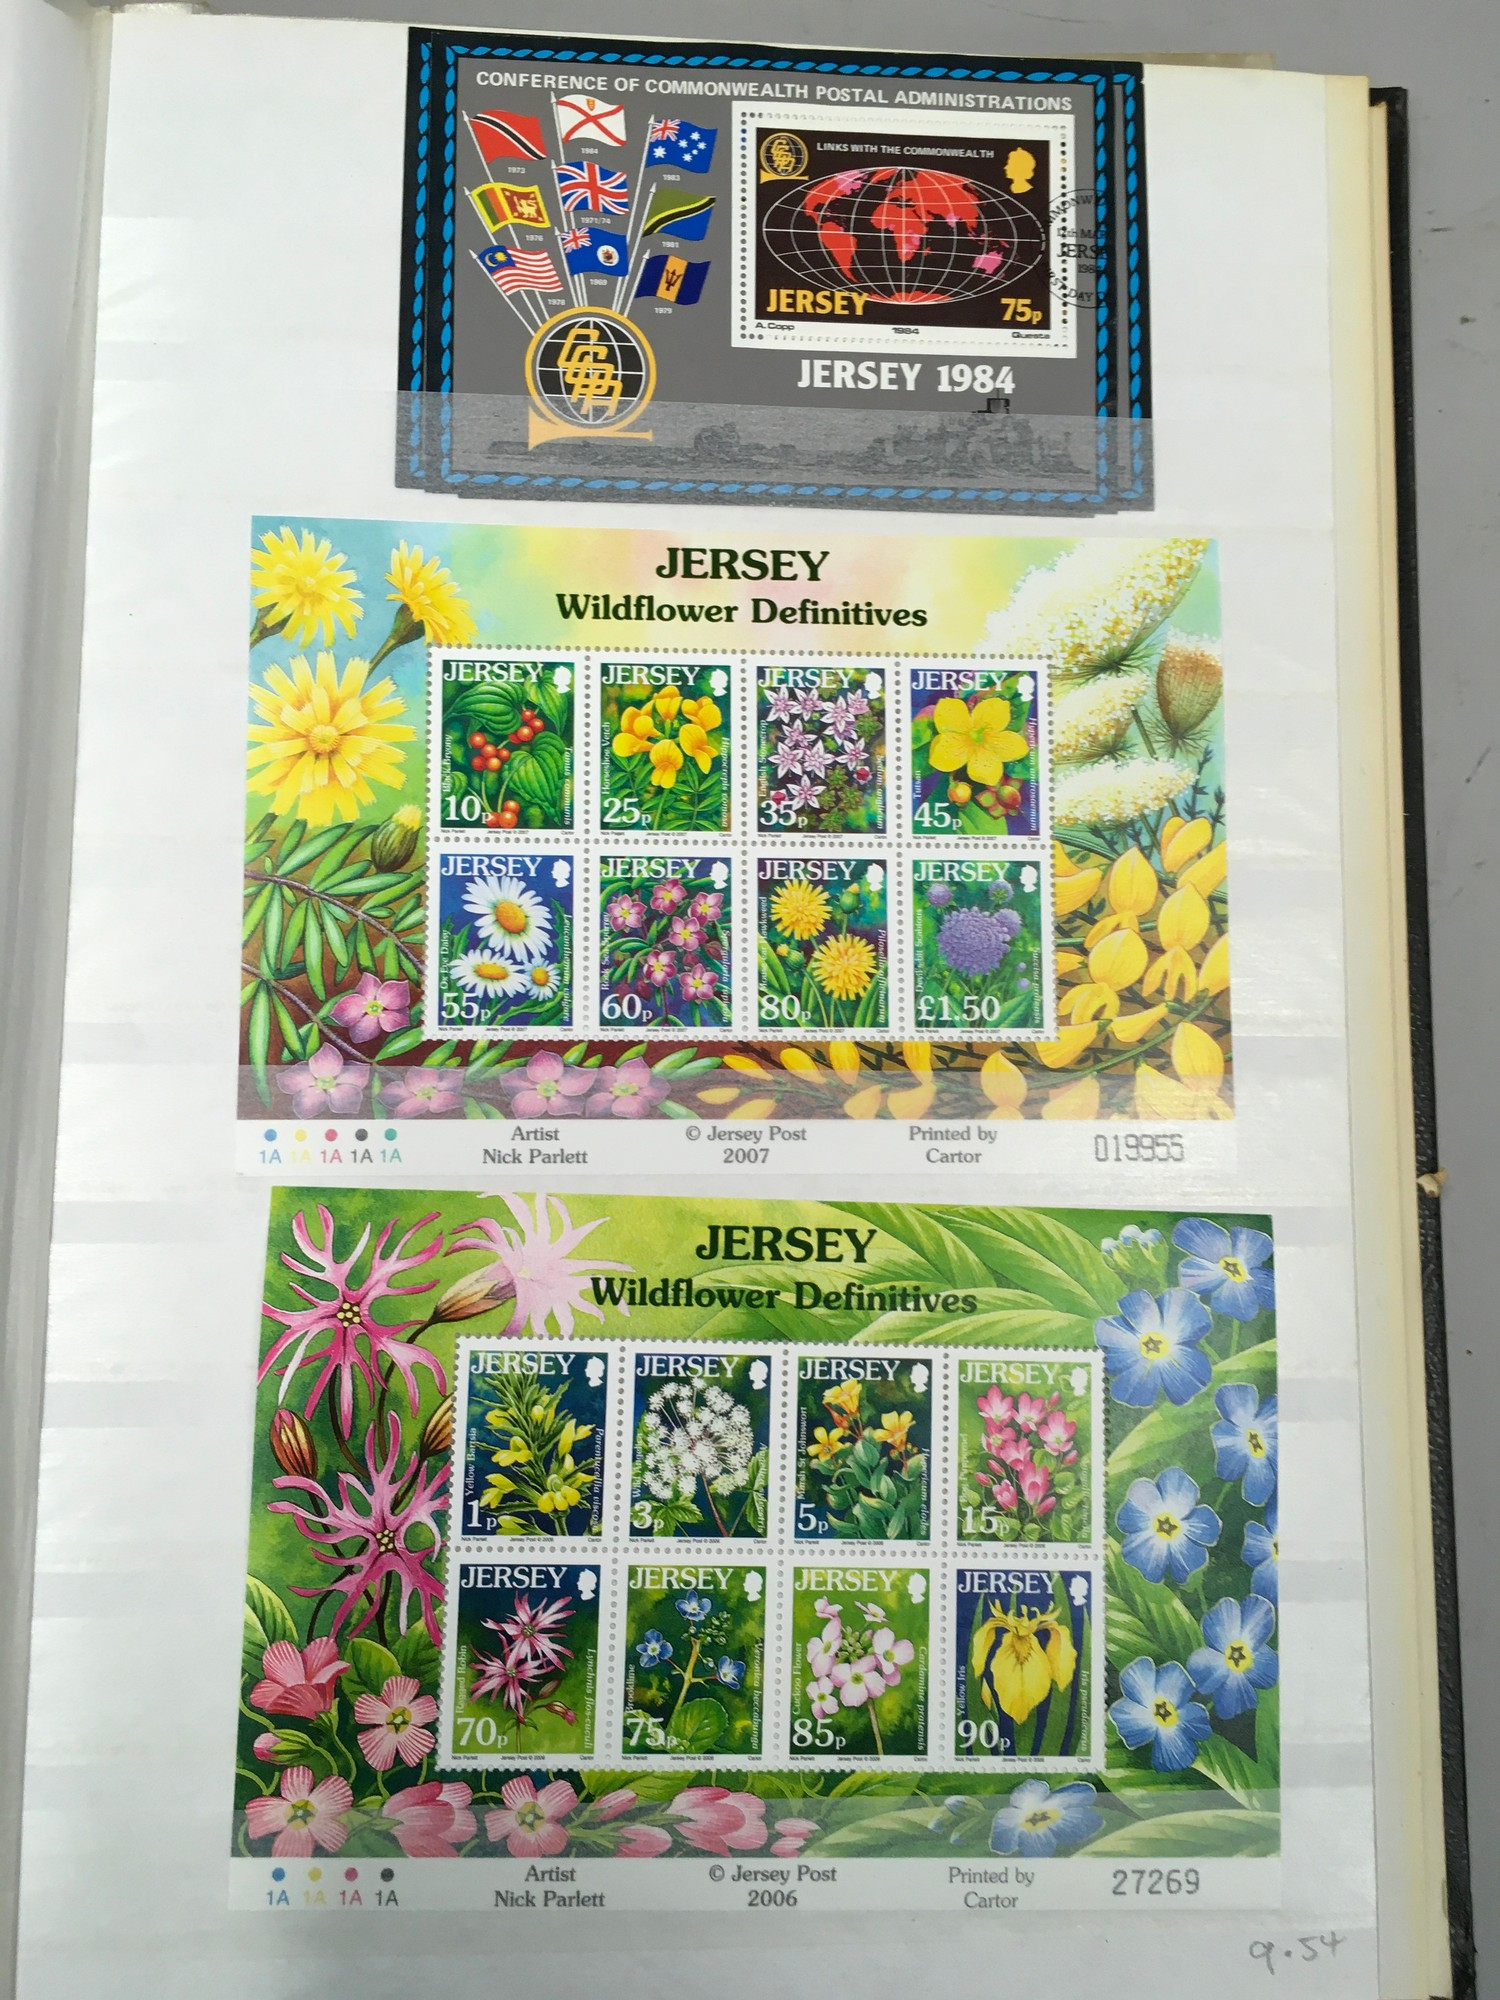 3 x Albums containing Channel Islands, Jersey Guernsey and Alderney over £800 in mint stamps. - Image 16 of 21